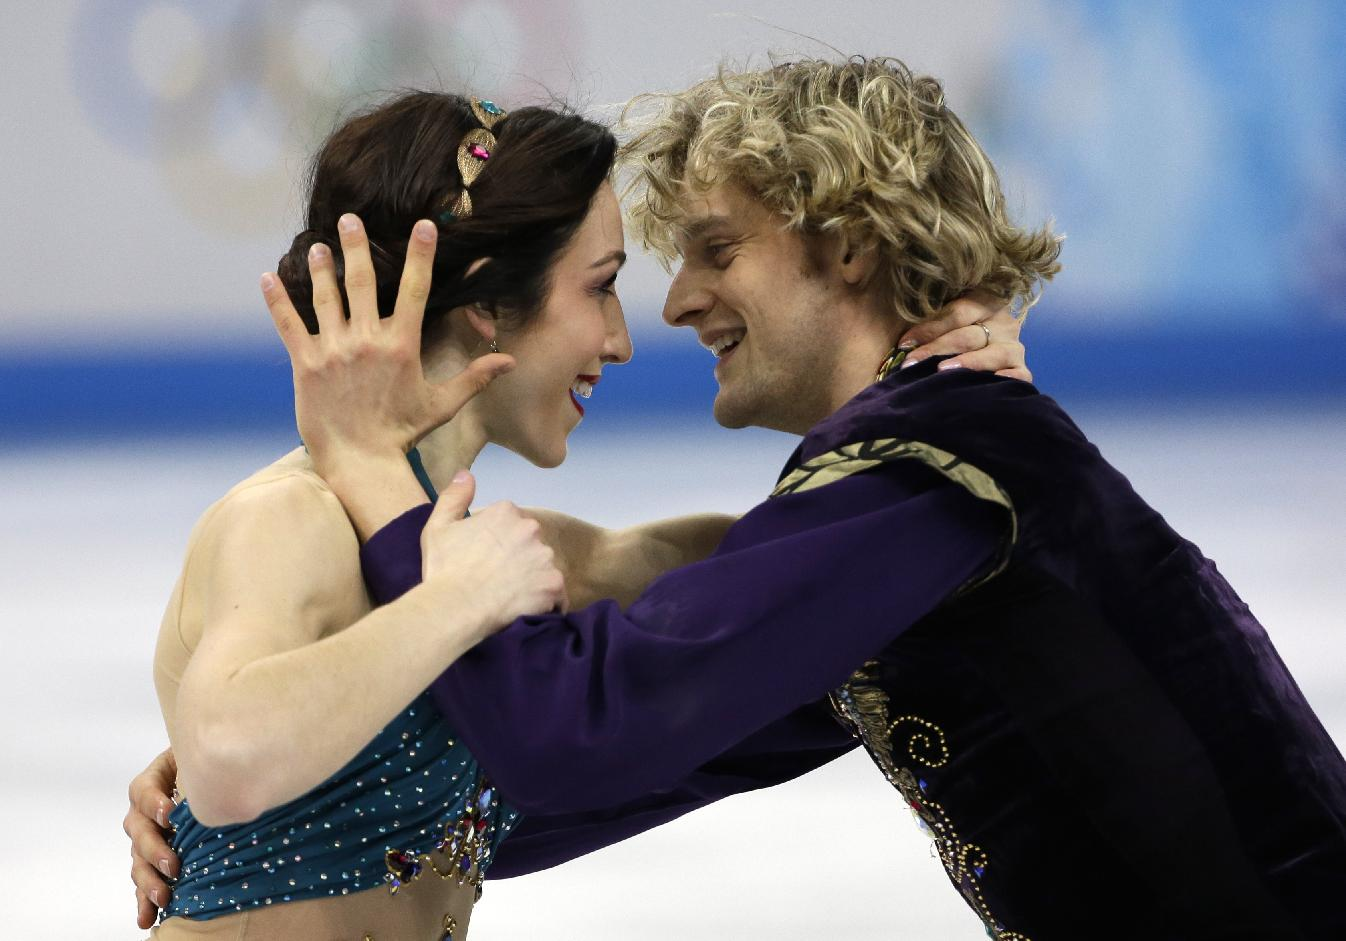 hot olympic ice dancers sex porn images